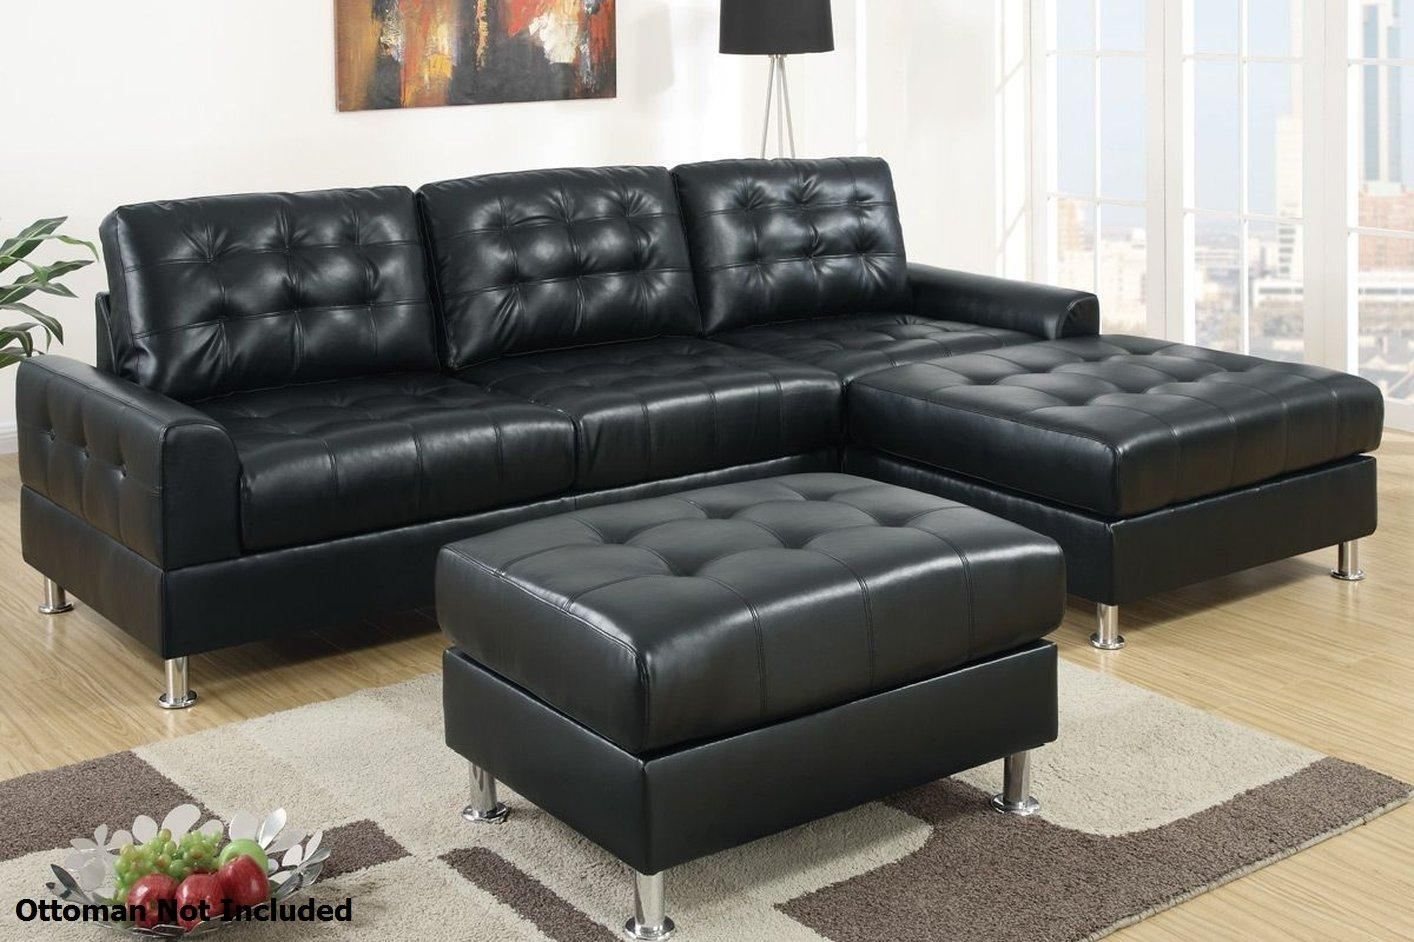 Chair And Sofa Covers | Tehranmix Decoration In Leather Sectional Sofas Toronto (View 7 of 20)